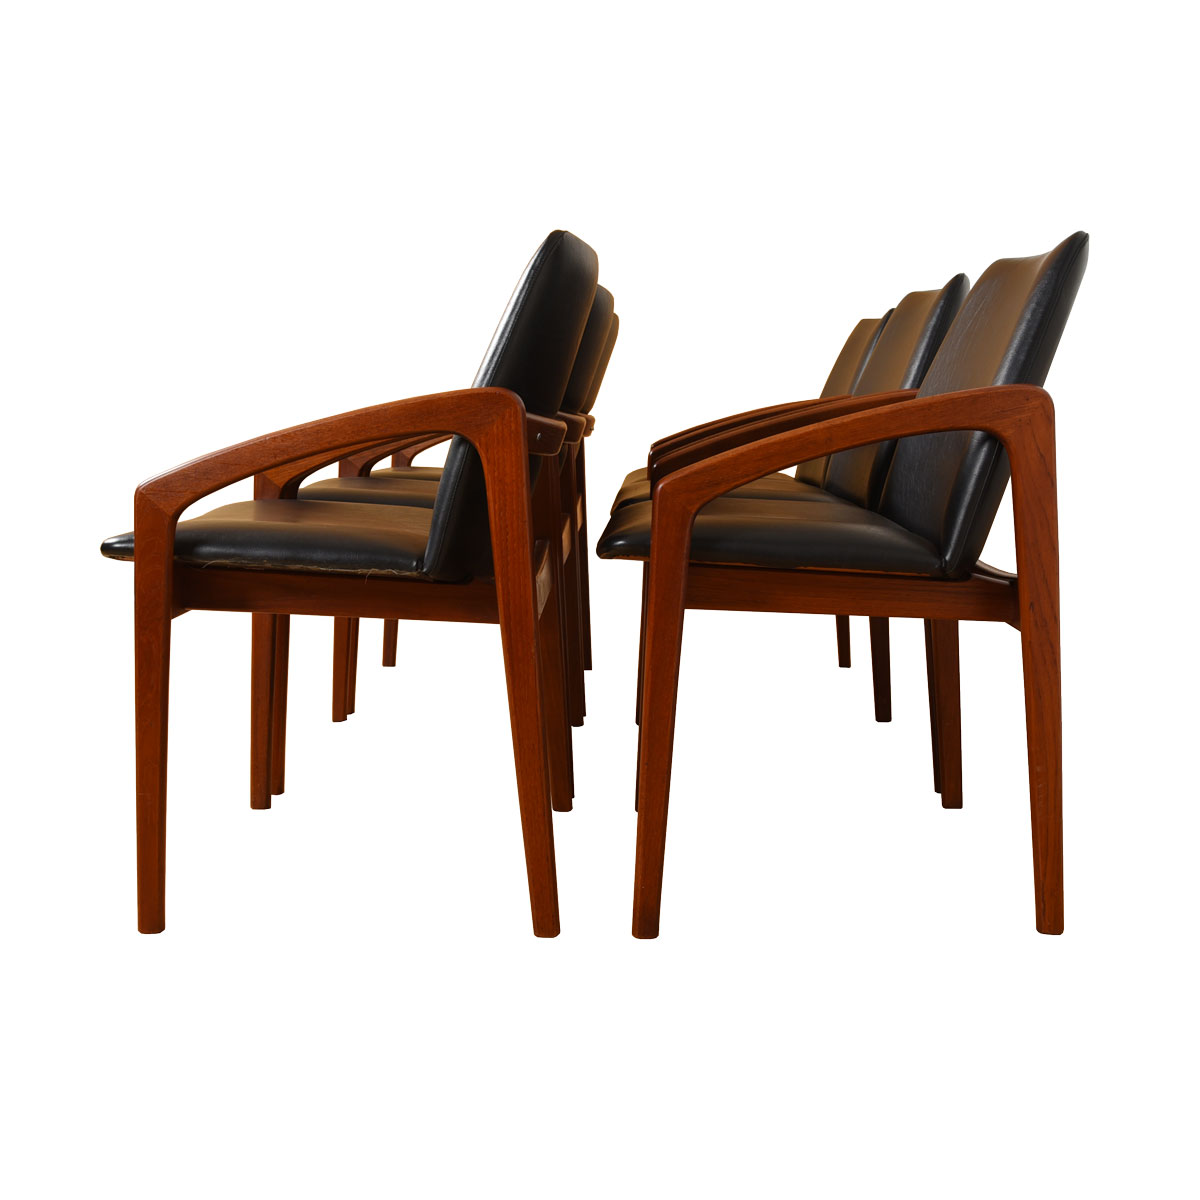 Stunning Set of 6 Kai Kristiansen Danish Teak Dining Chairs